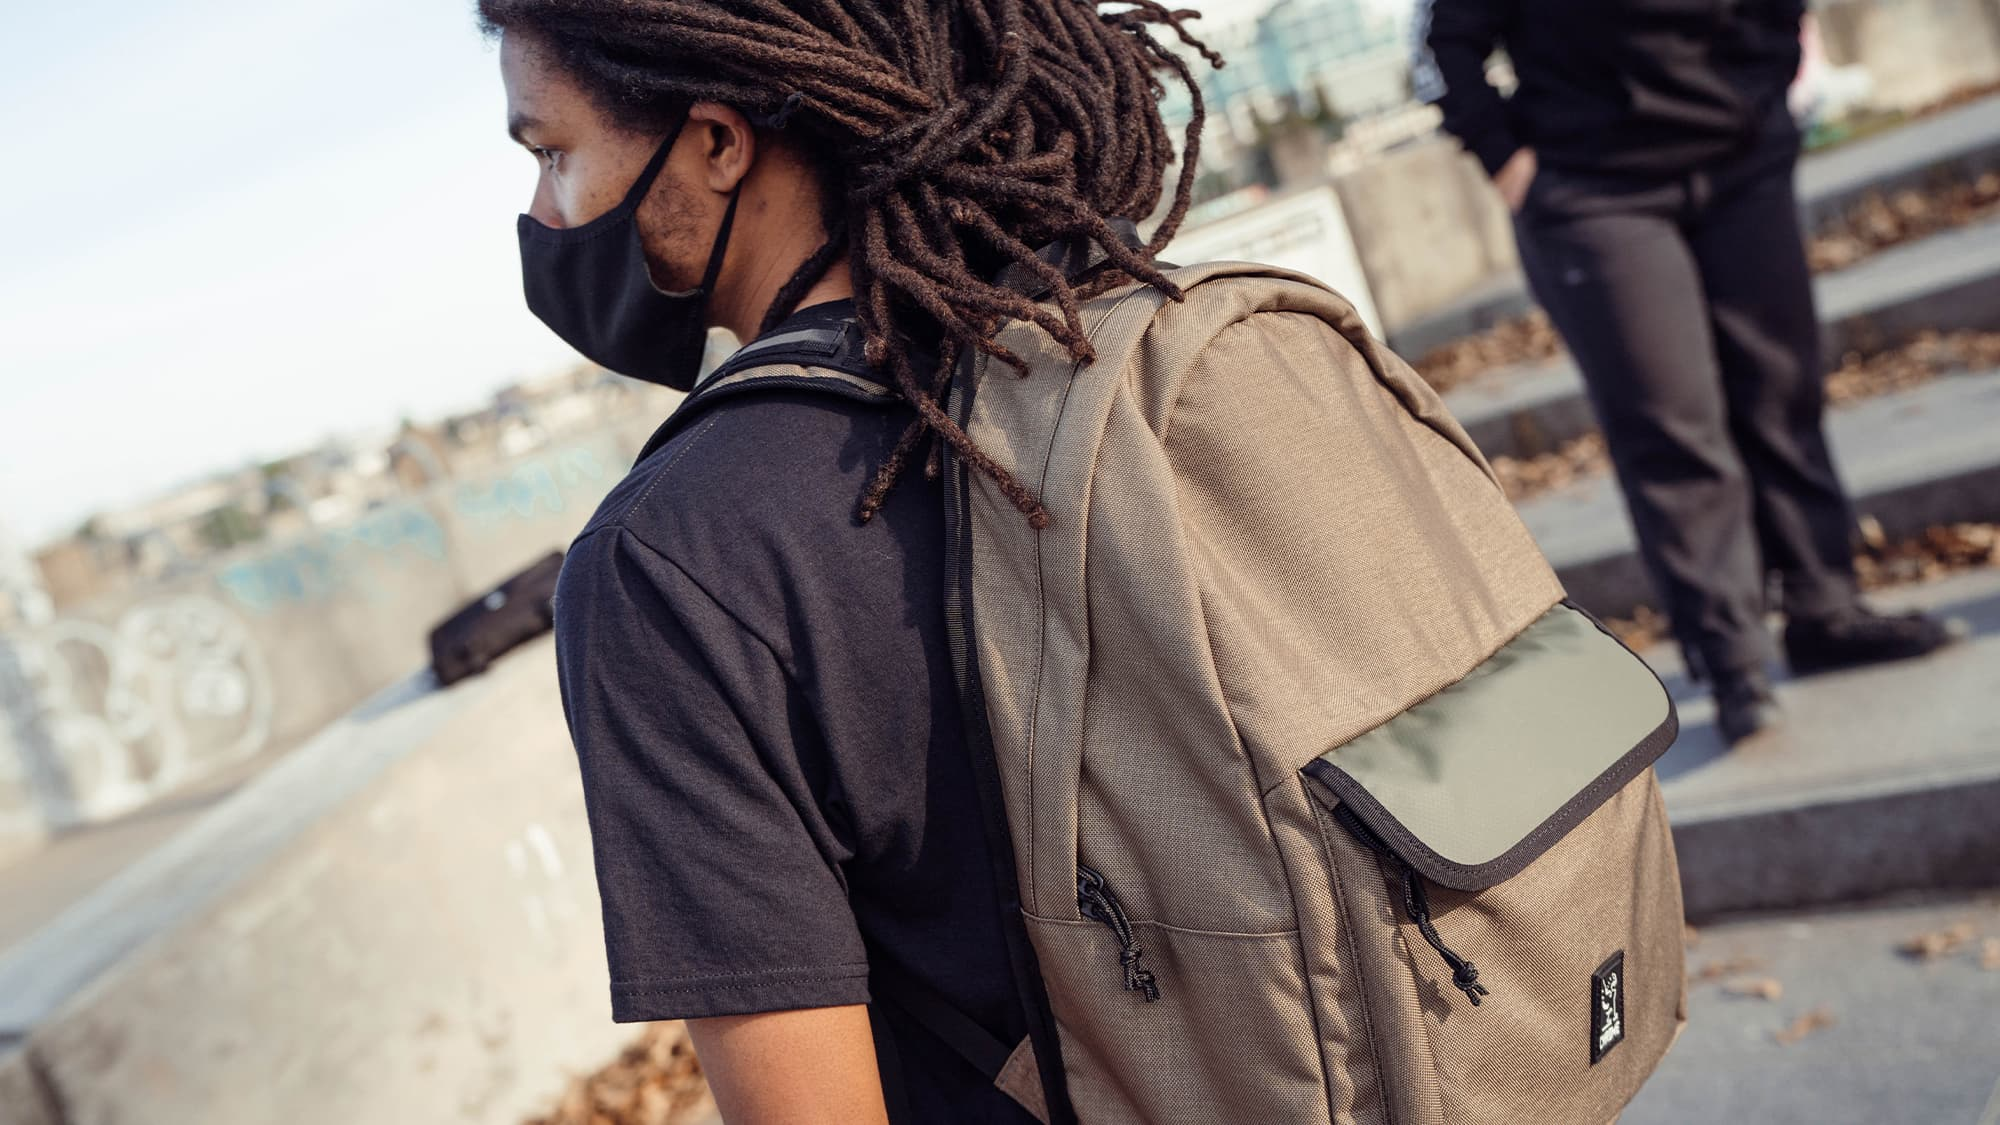 Niko Backpack, perfect all around pack